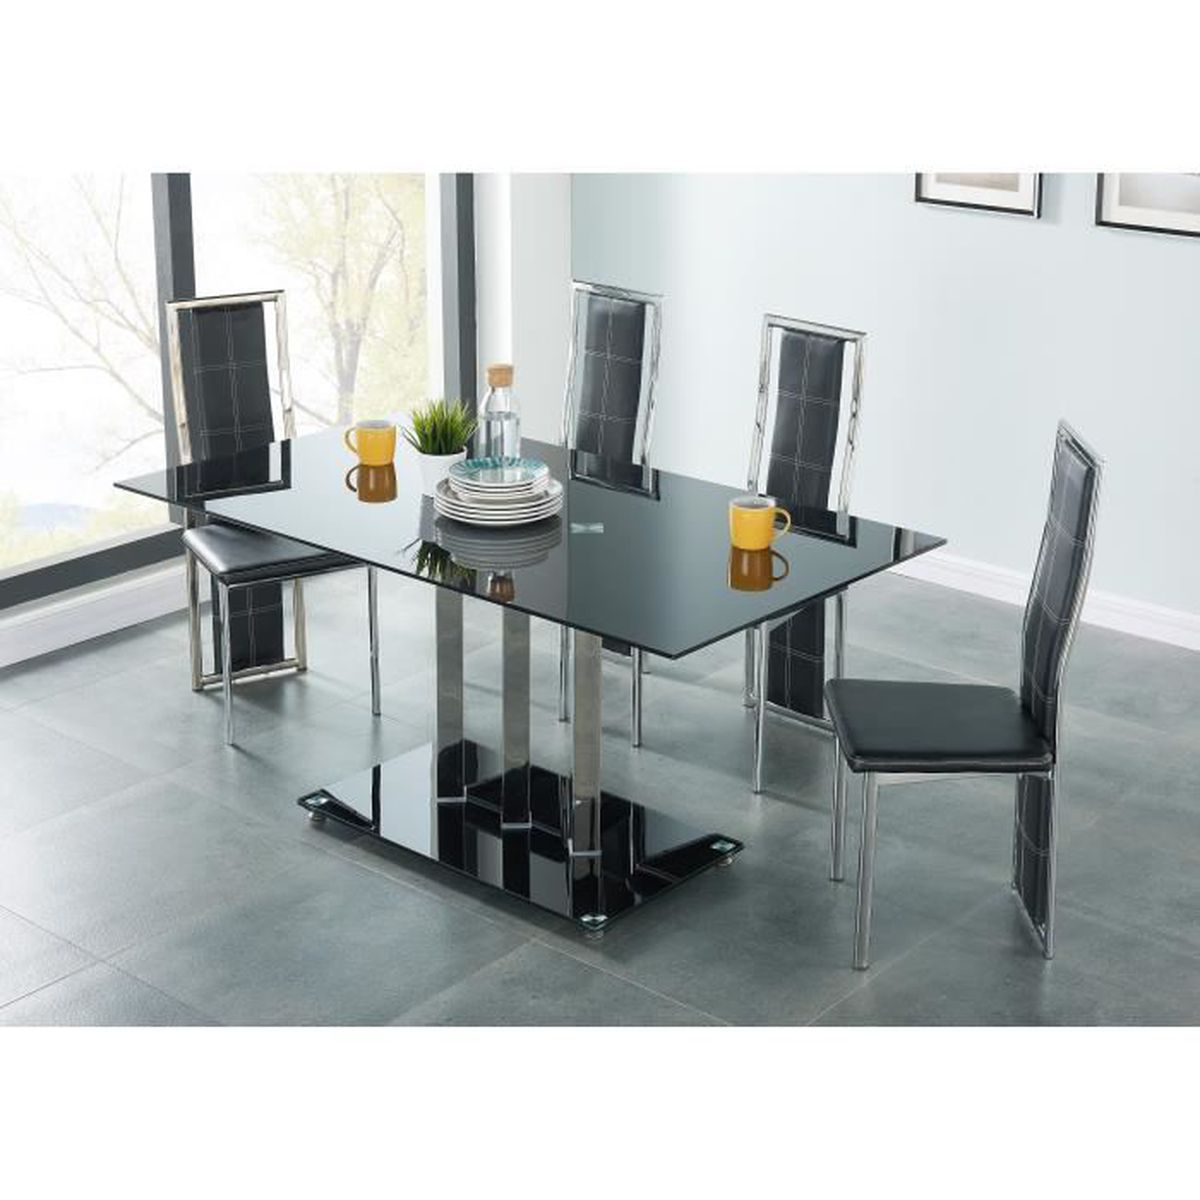 Tribeca table manger 160x90 cm 4 chaises noir et for Ensemble table et chaise noir